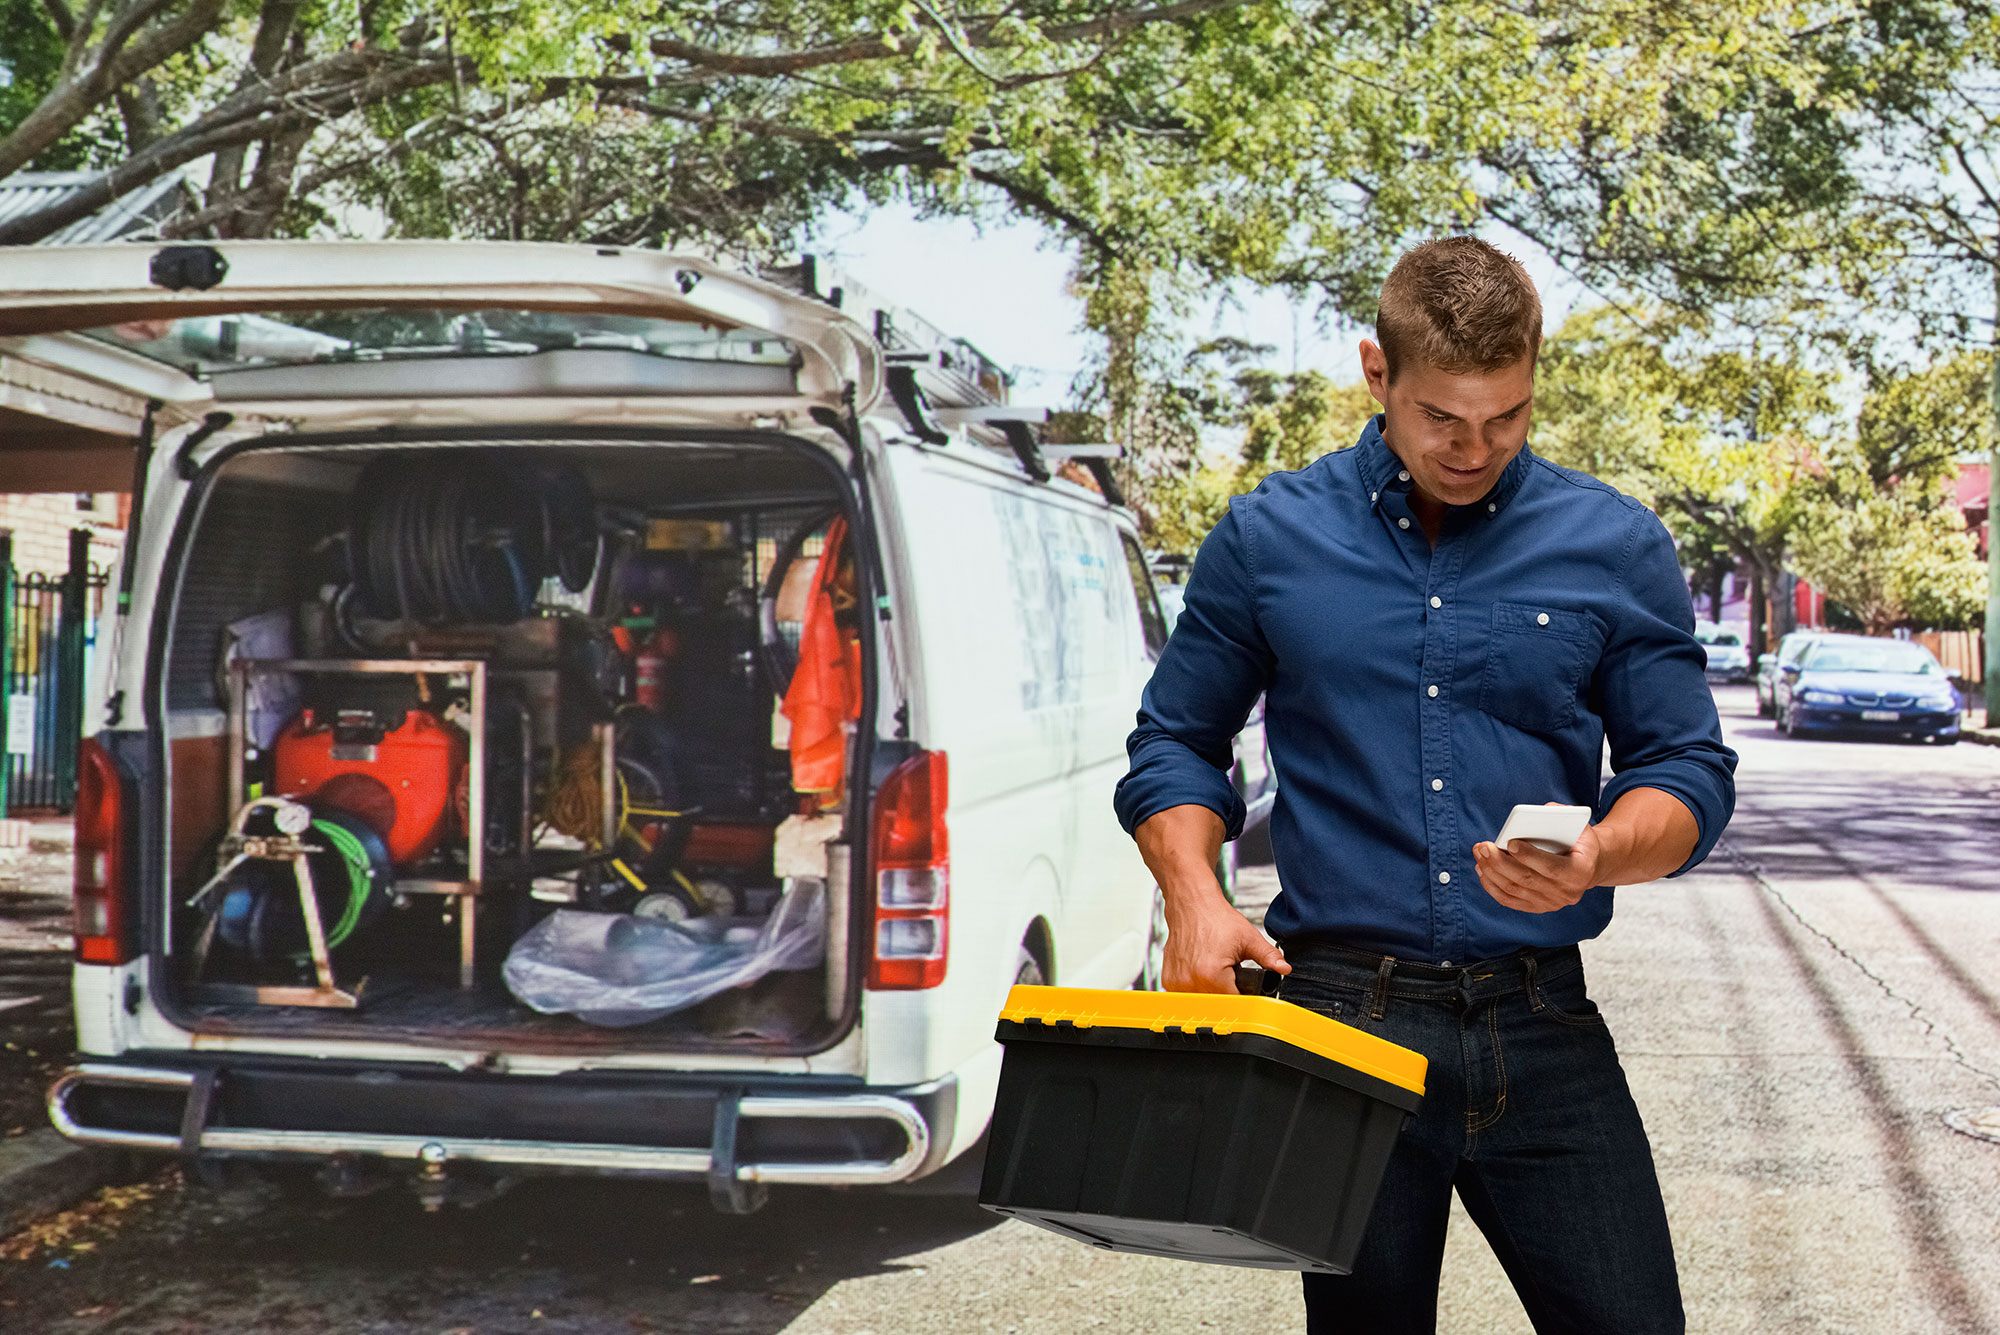 contractor-handyman-plumber-toolbox-van-mobile-phone